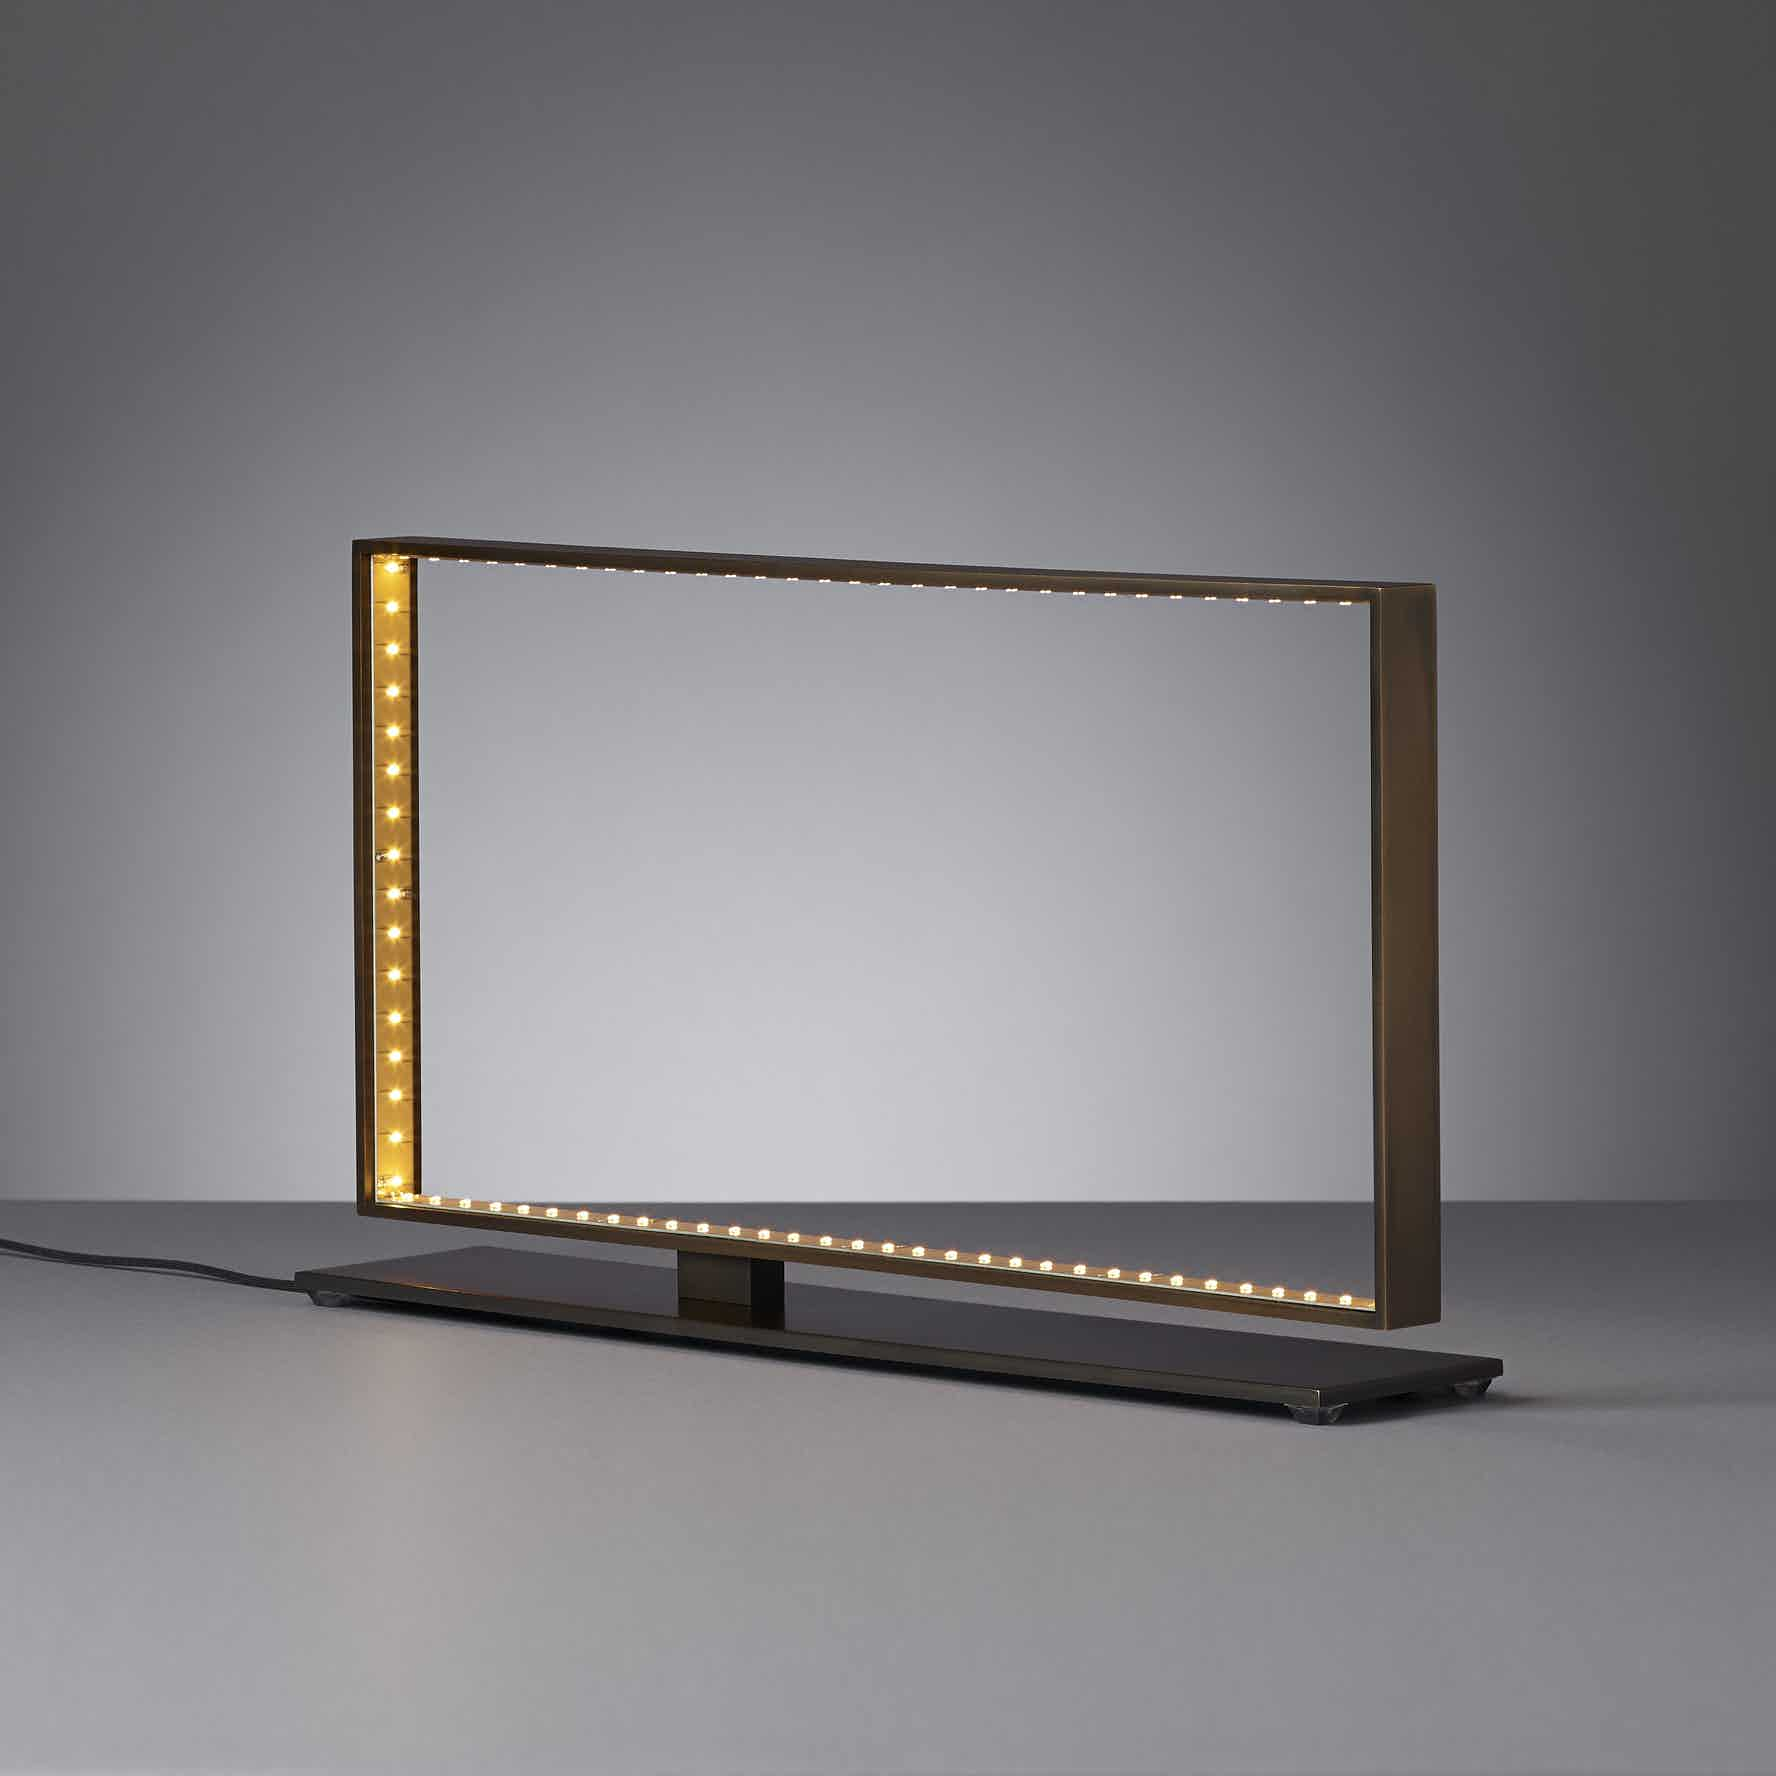 Le-deun-luminaires-square-table-lamp-horizontal-haute-living